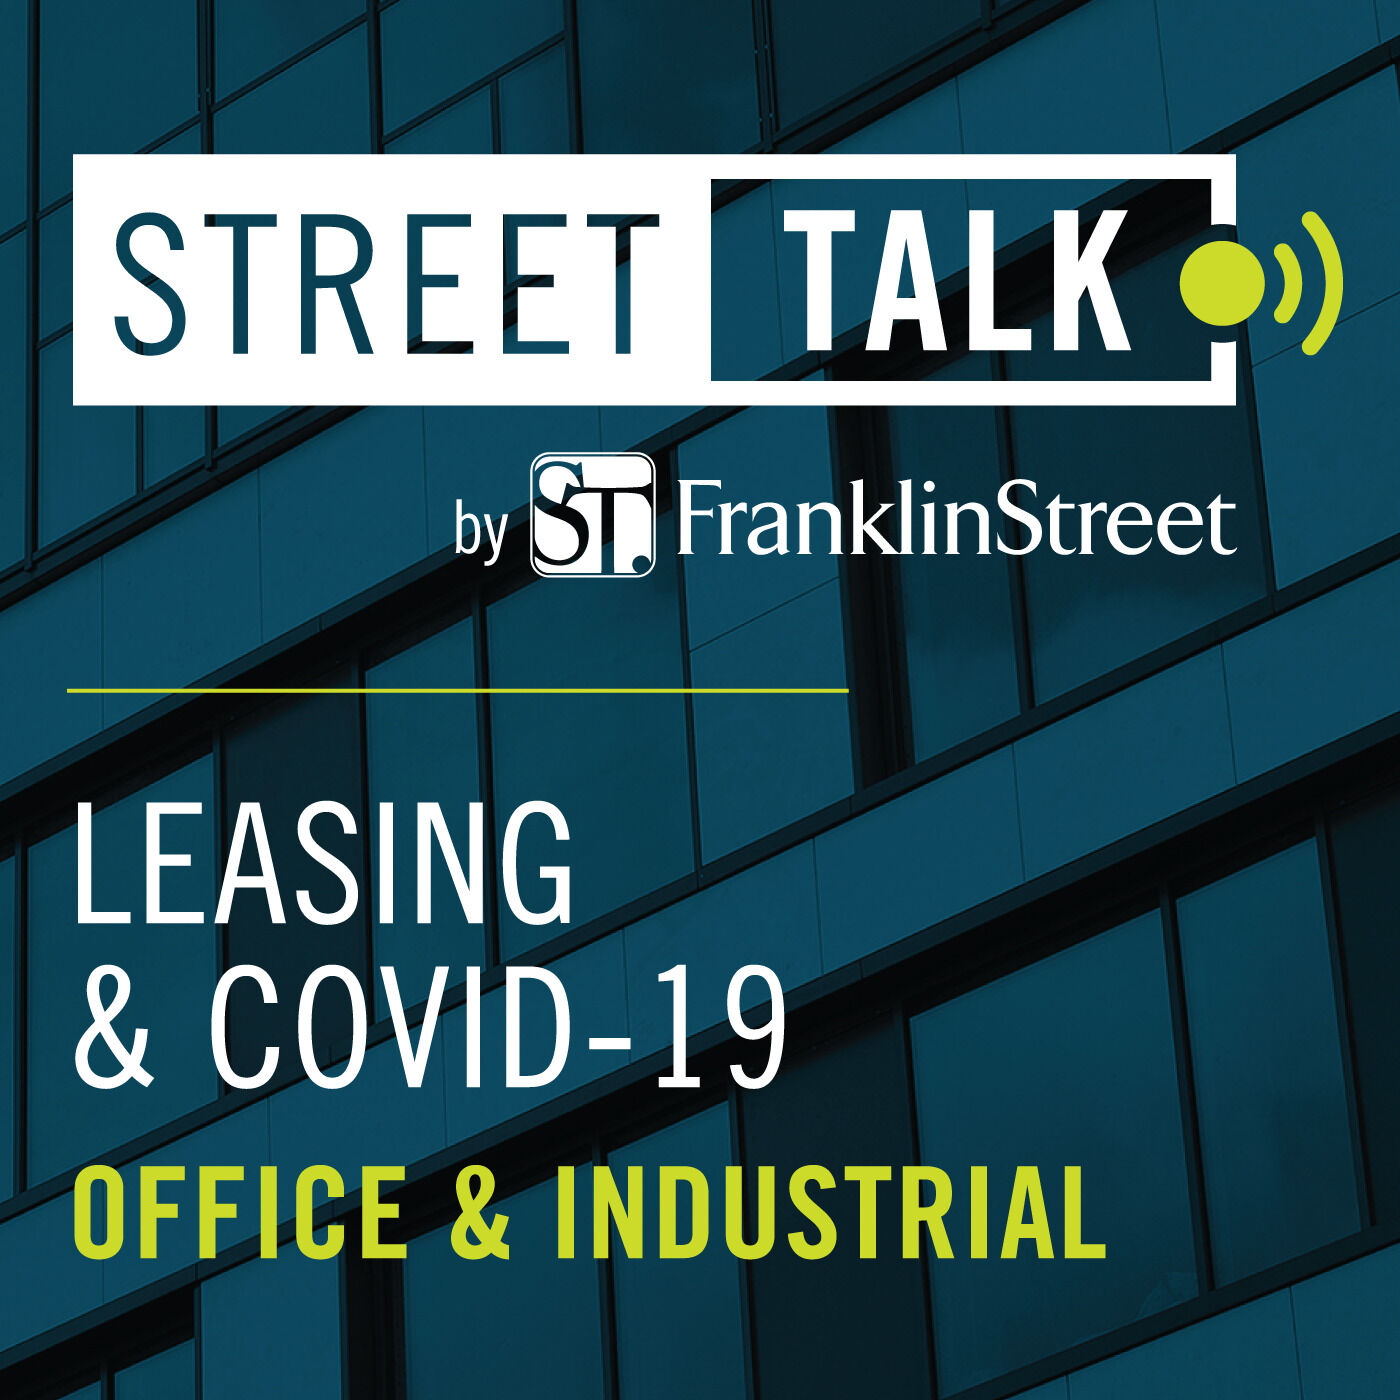 Leasing & COVID-19: Office & Industrial